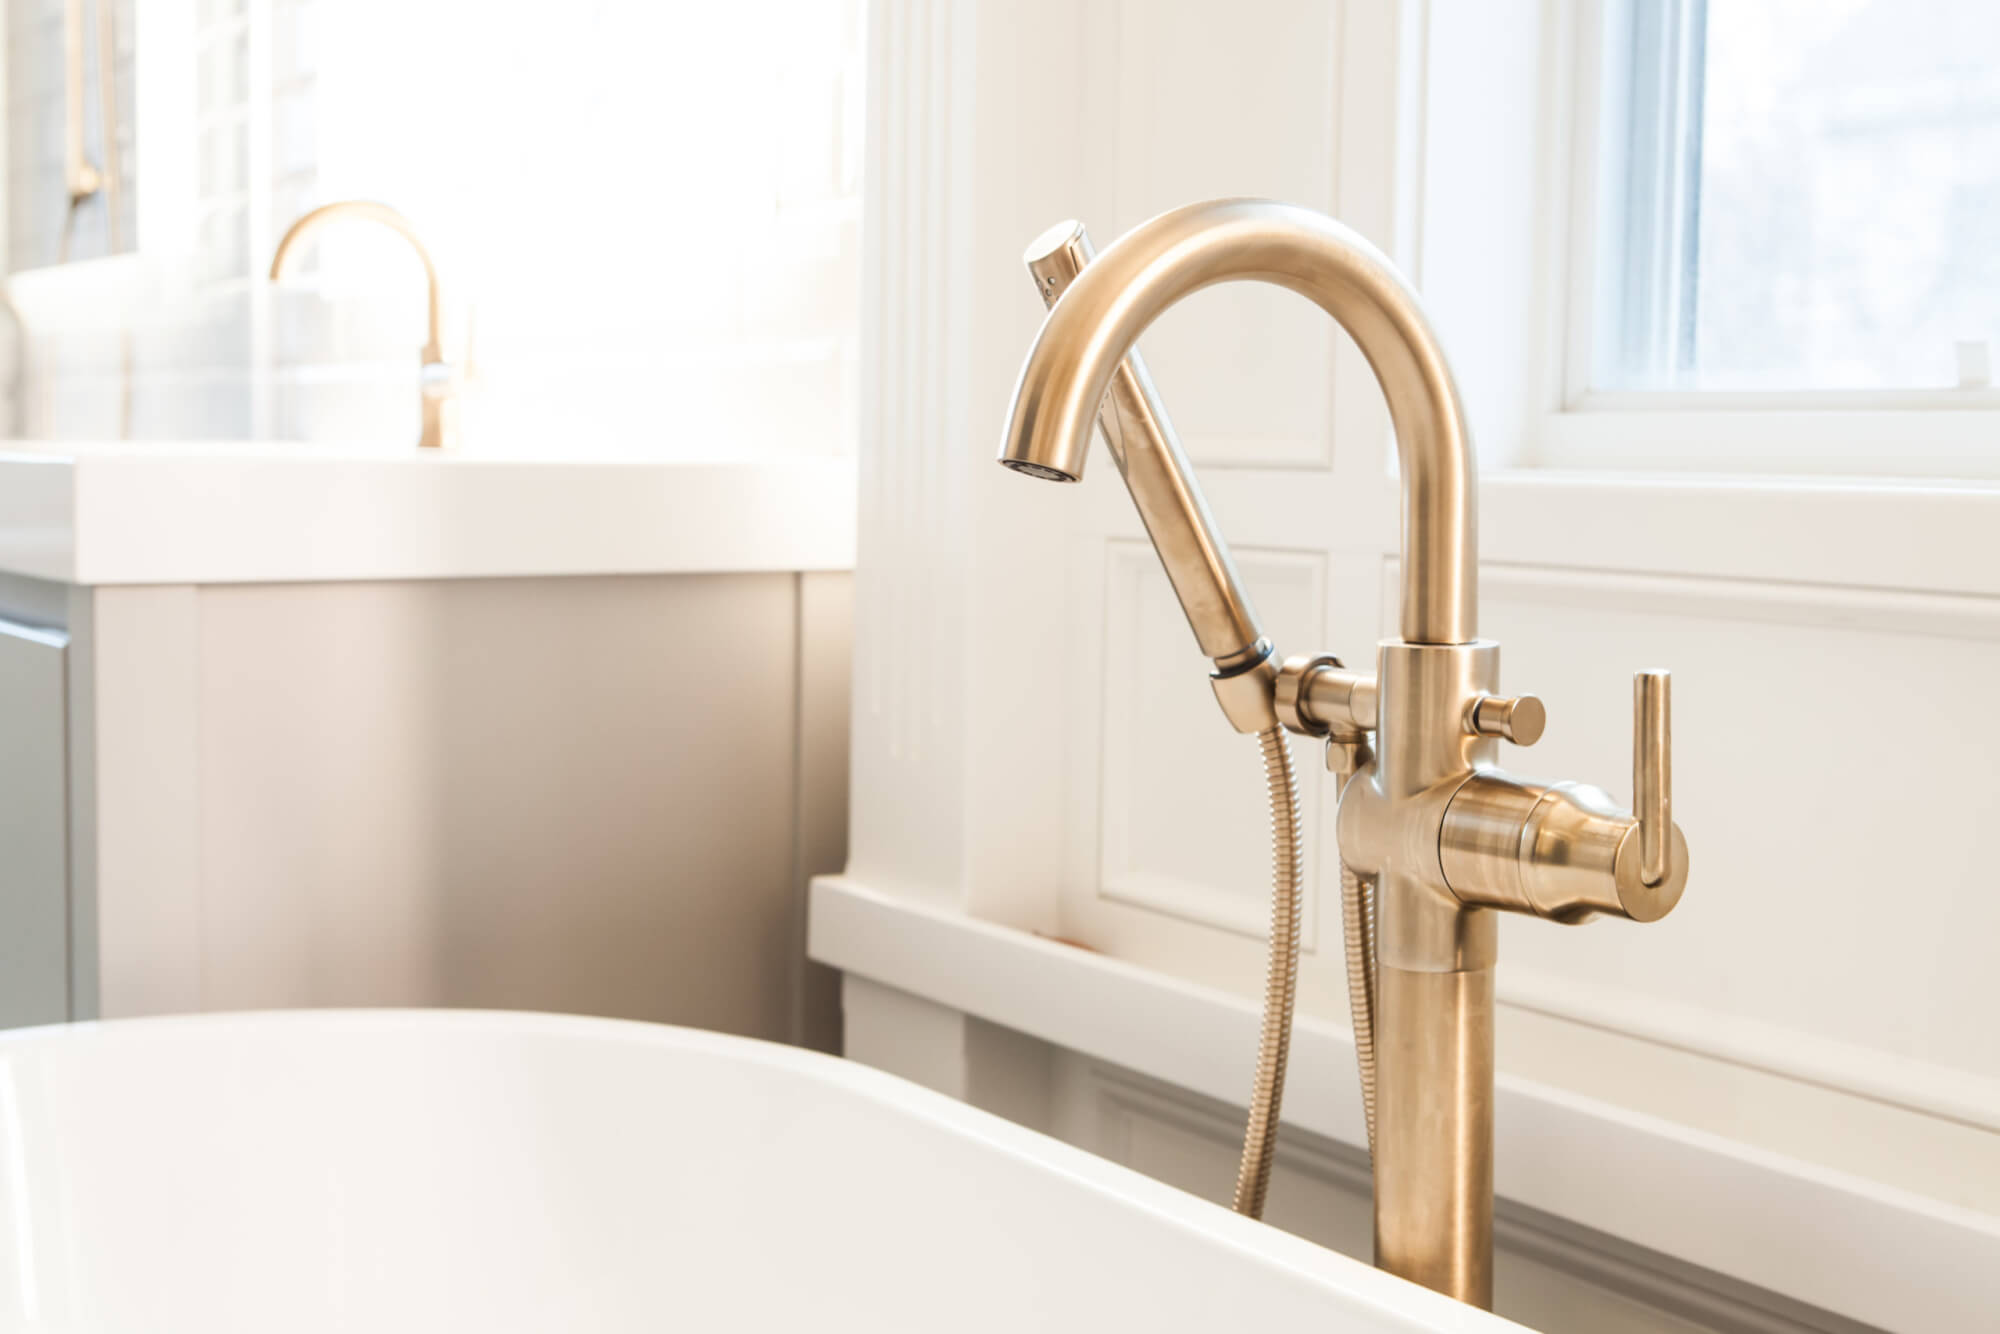 close up of brass bathtub faucet with handheld sprayer